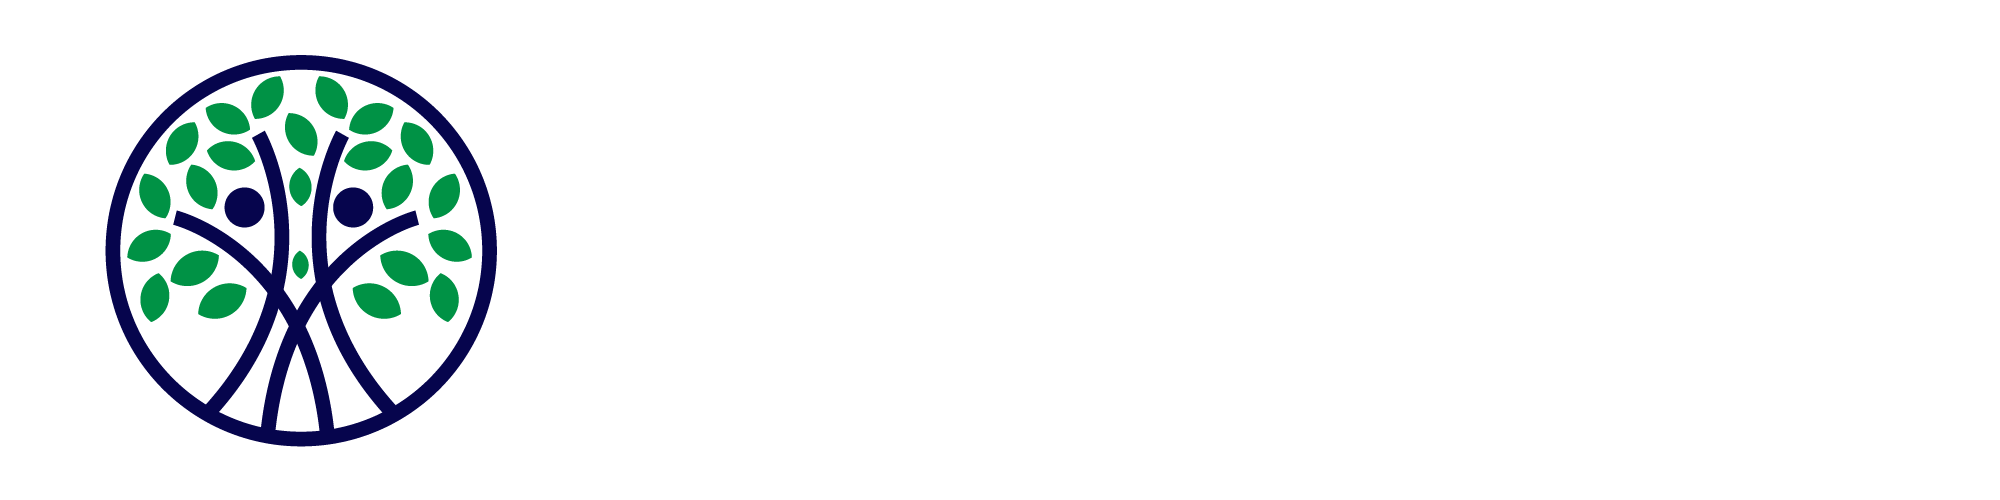 Never Say Invisible - Logo White